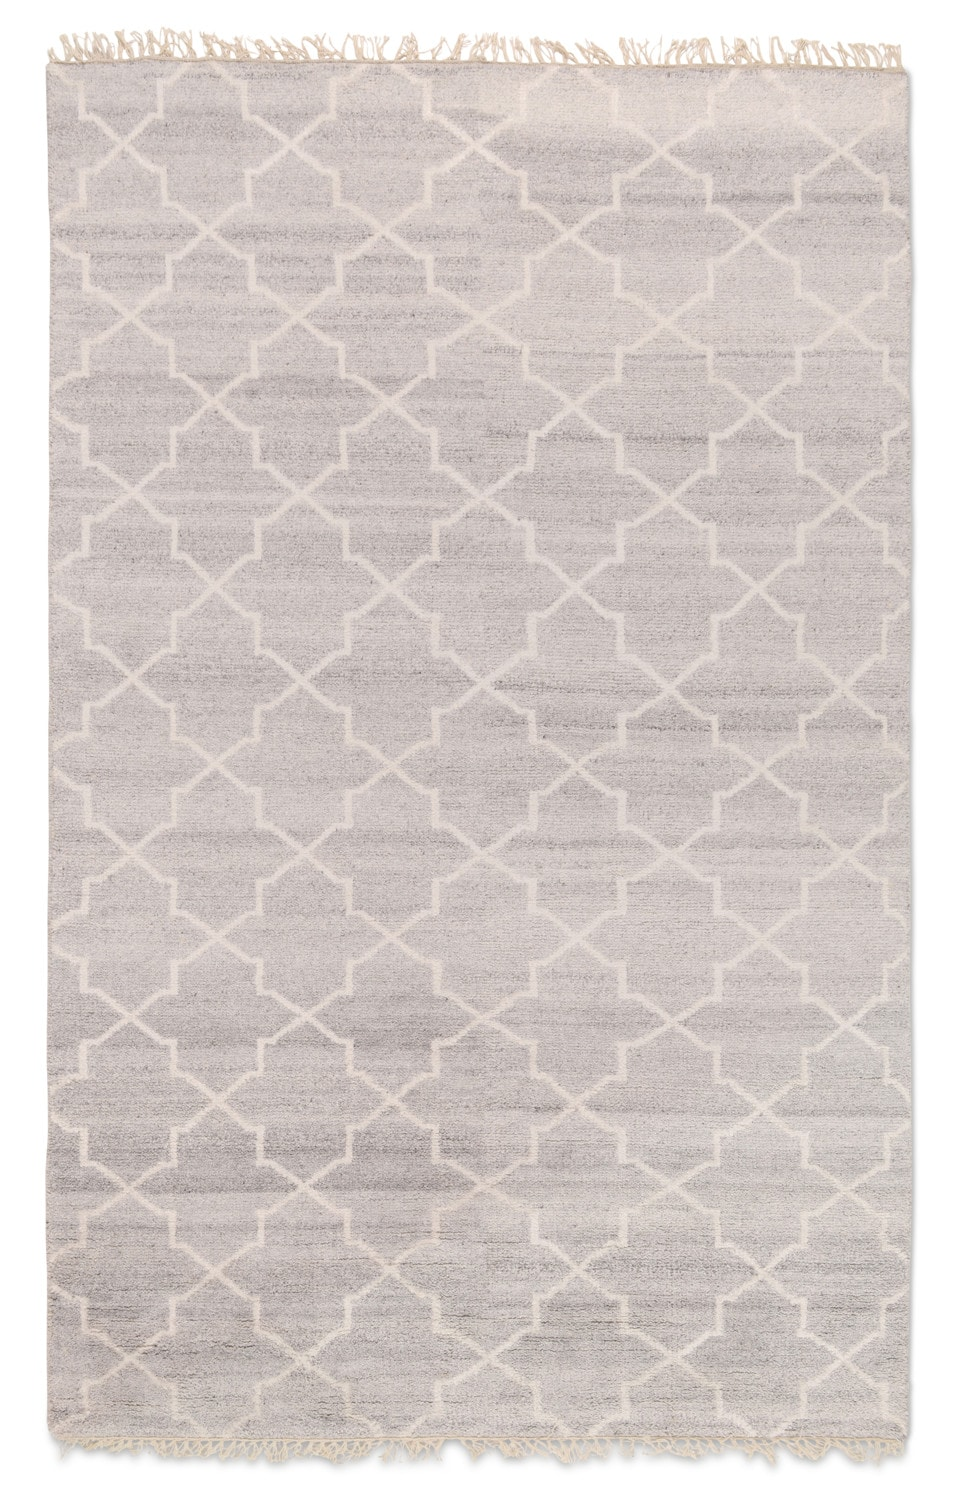 Rugs - Tile 8' x 10' Area Rug - Silver